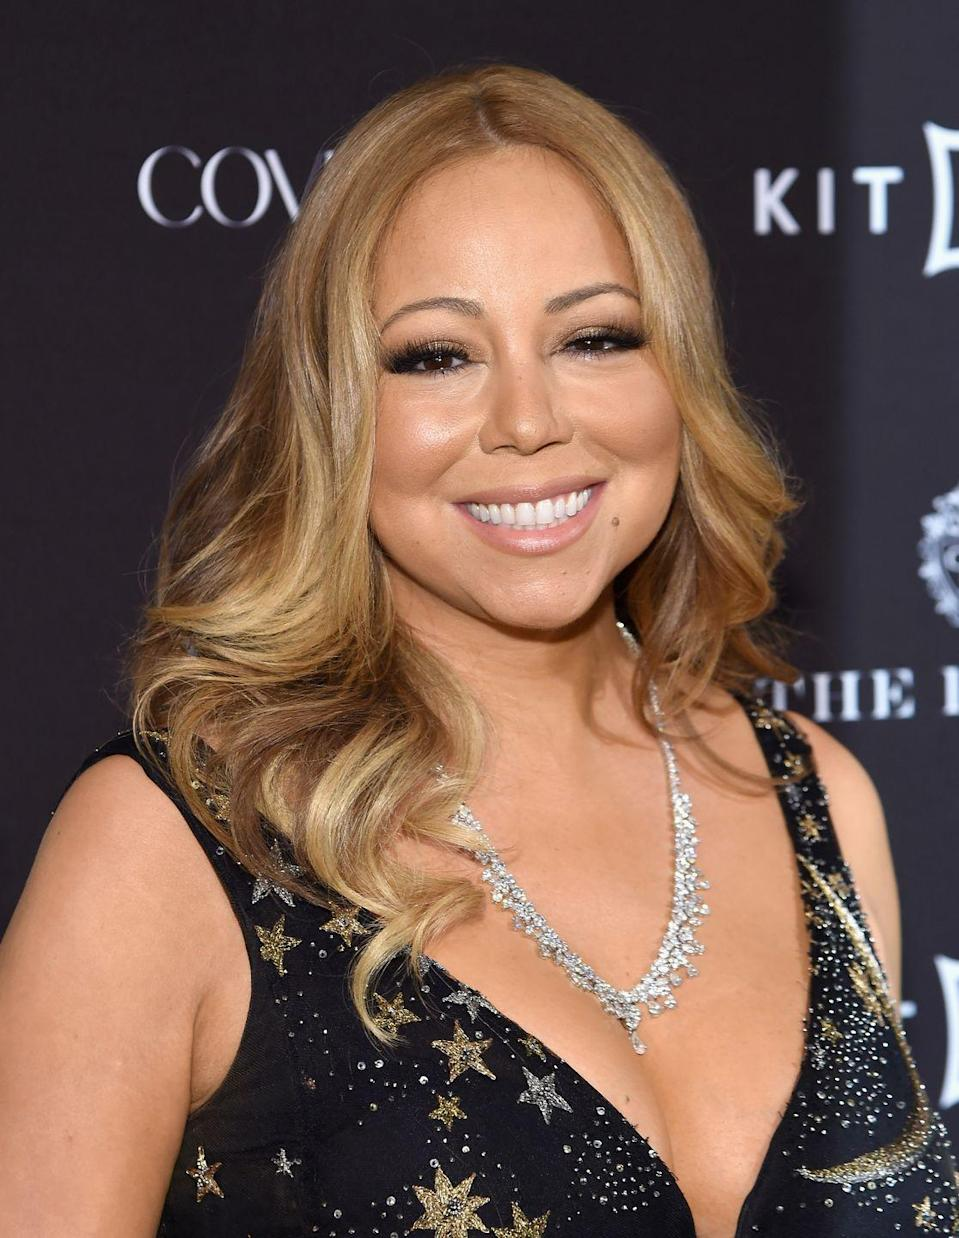 """<p>Carey plays herself in the 2001 film <em>Glitter </em>and was definitely not a fan. She told Andy Cohen it was her <a href=""""http://hiphollywood.com/2013/12/mariah-carey-talks-glitter-biggest-regret-ever/"""" rel=""""nofollow noopener"""" target=""""_blank"""" data-ylk=""""slk:biggest regret"""" class=""""link rapid-noclick-resp"""">biggest regret</a>. """"It was a horrible couple of years and then I had to get my momentum back for people to let it go.""""</p>"""